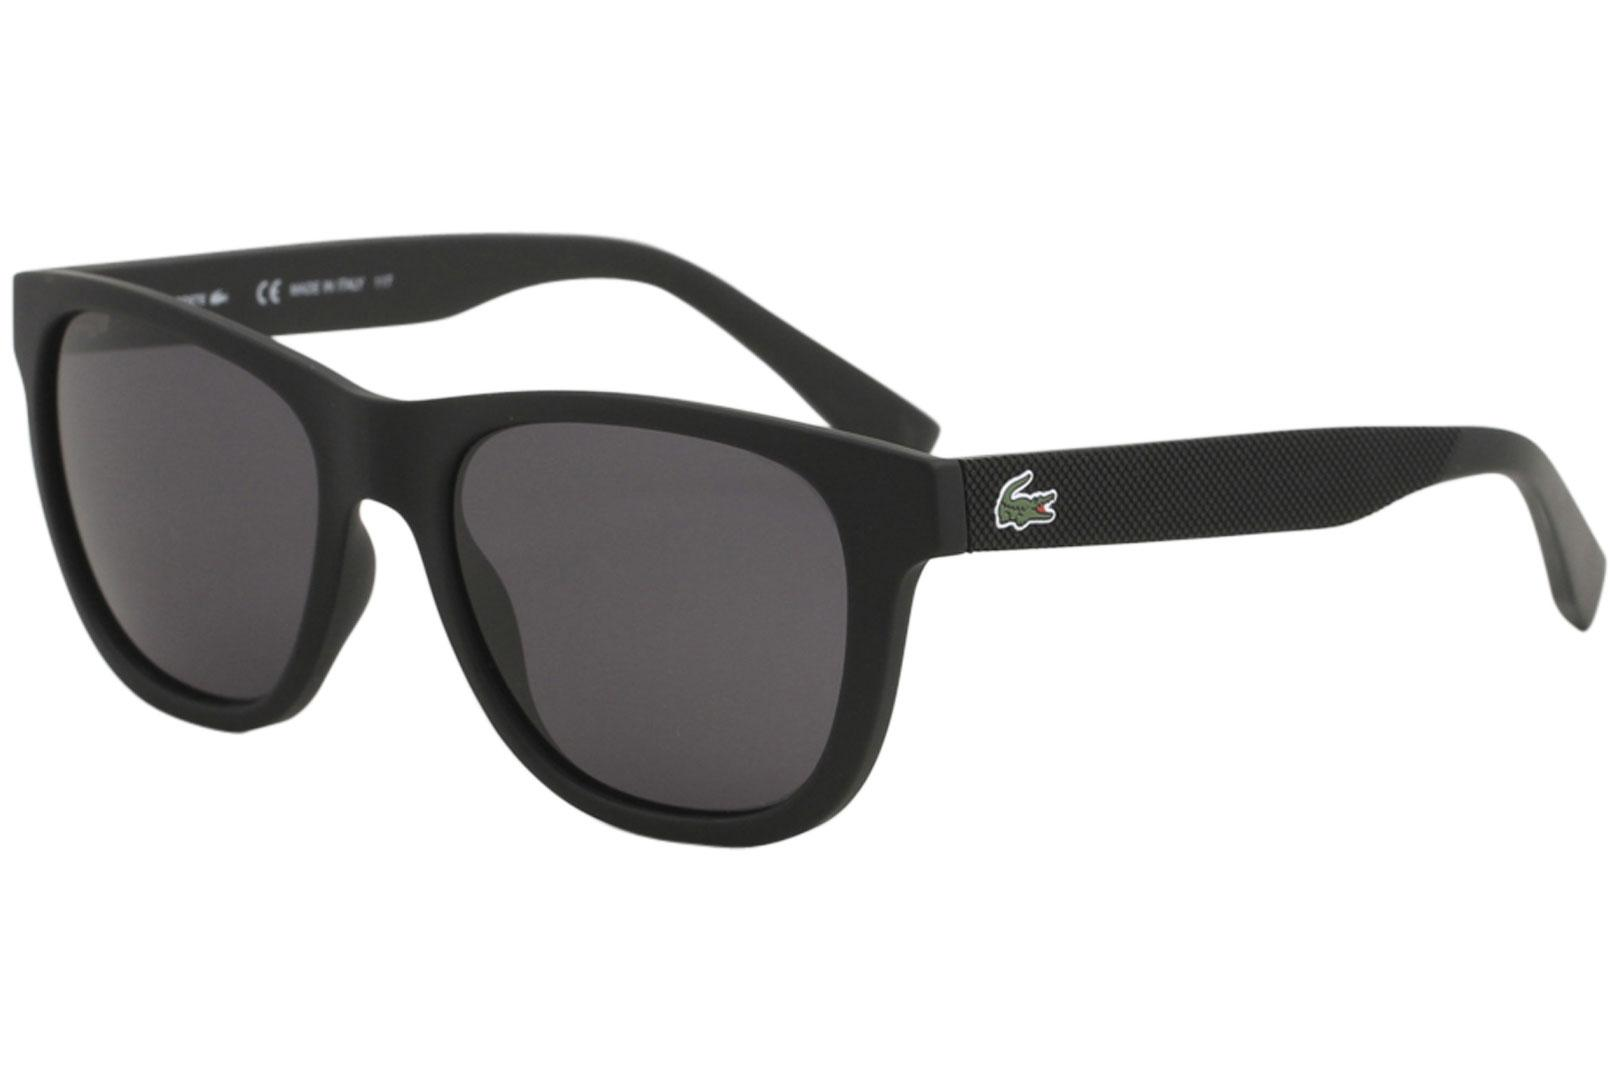 30996b1143d9 Lacoste Men s L848S L 848 S Fashion Square Sunglasses by Lacoste